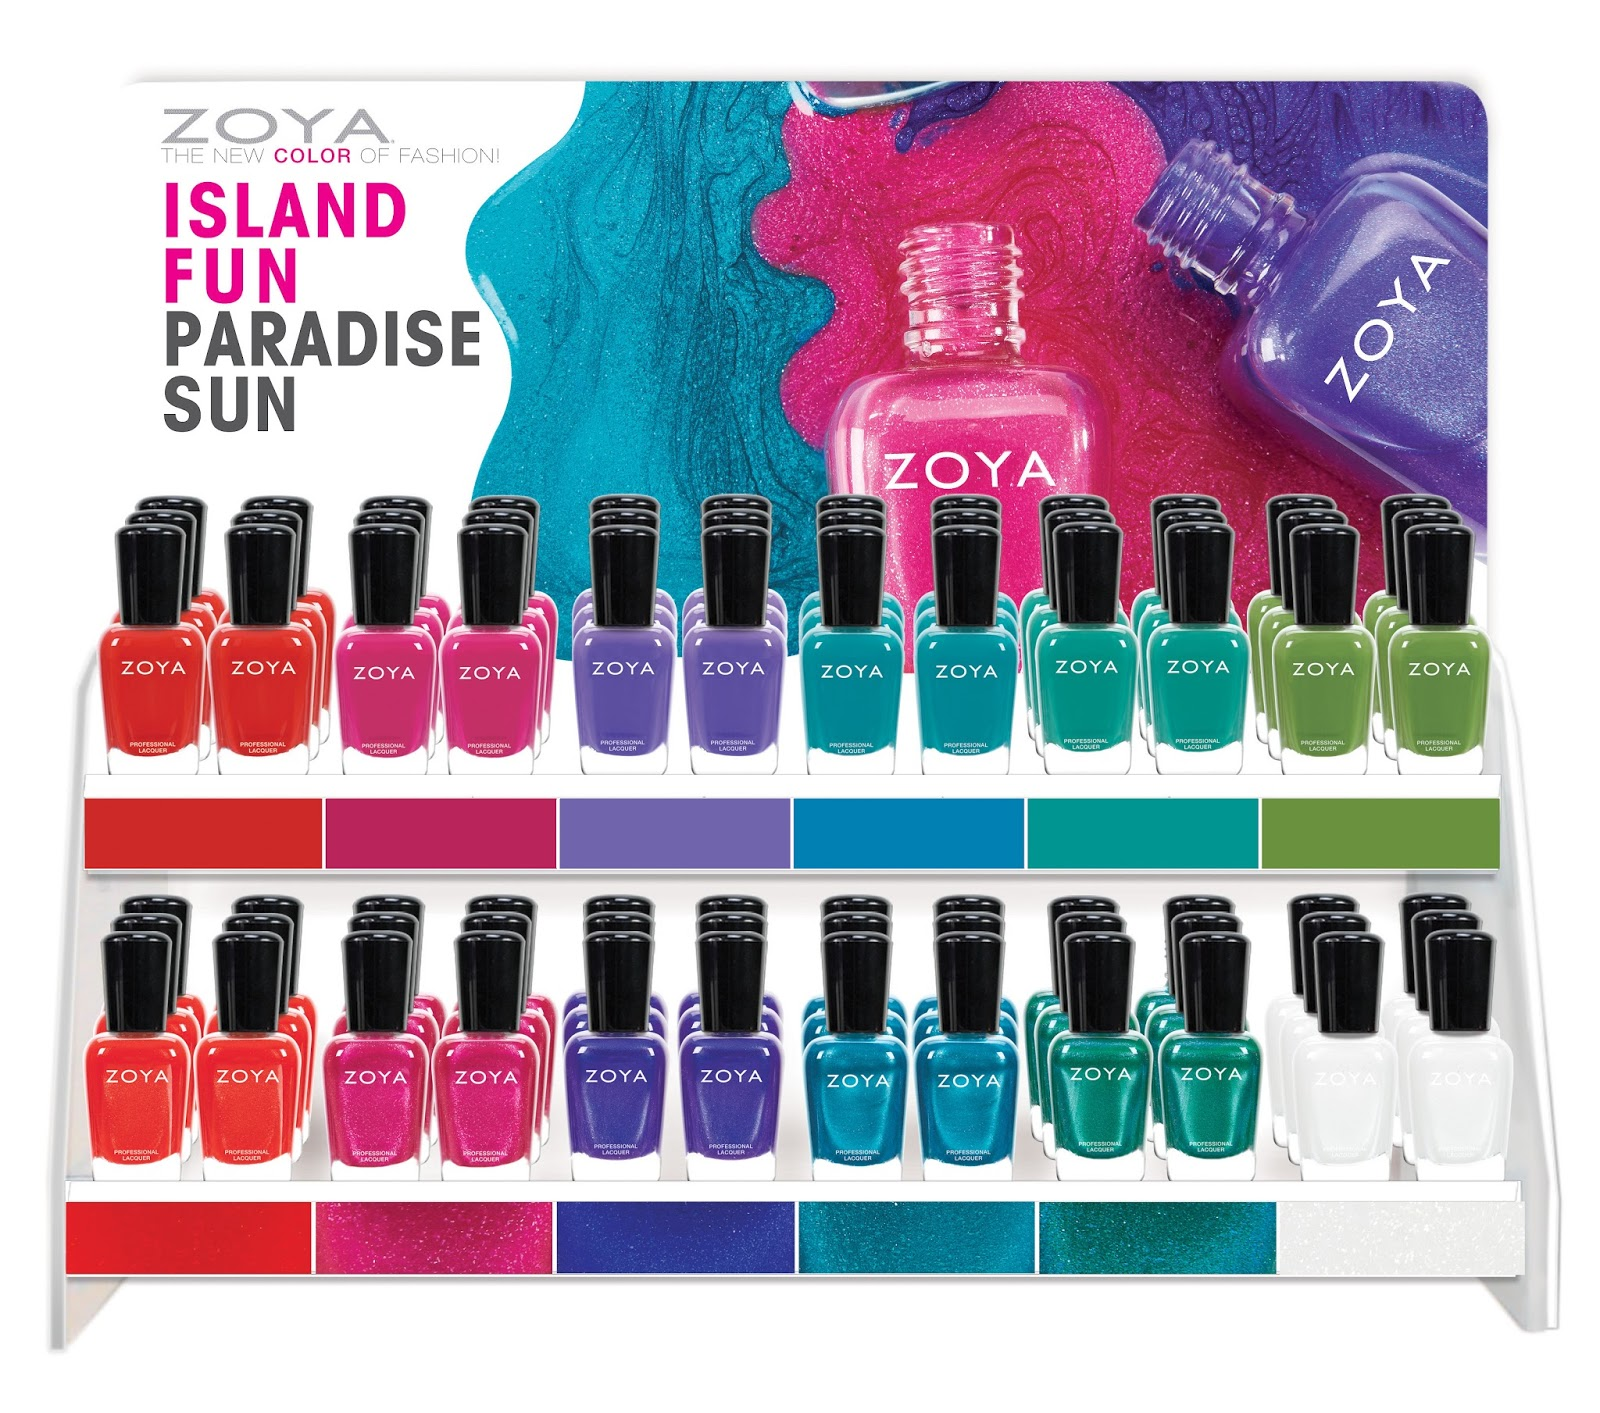 Zoya-Island-Fun-Paradise Sun-Summer-2015-Press-Release